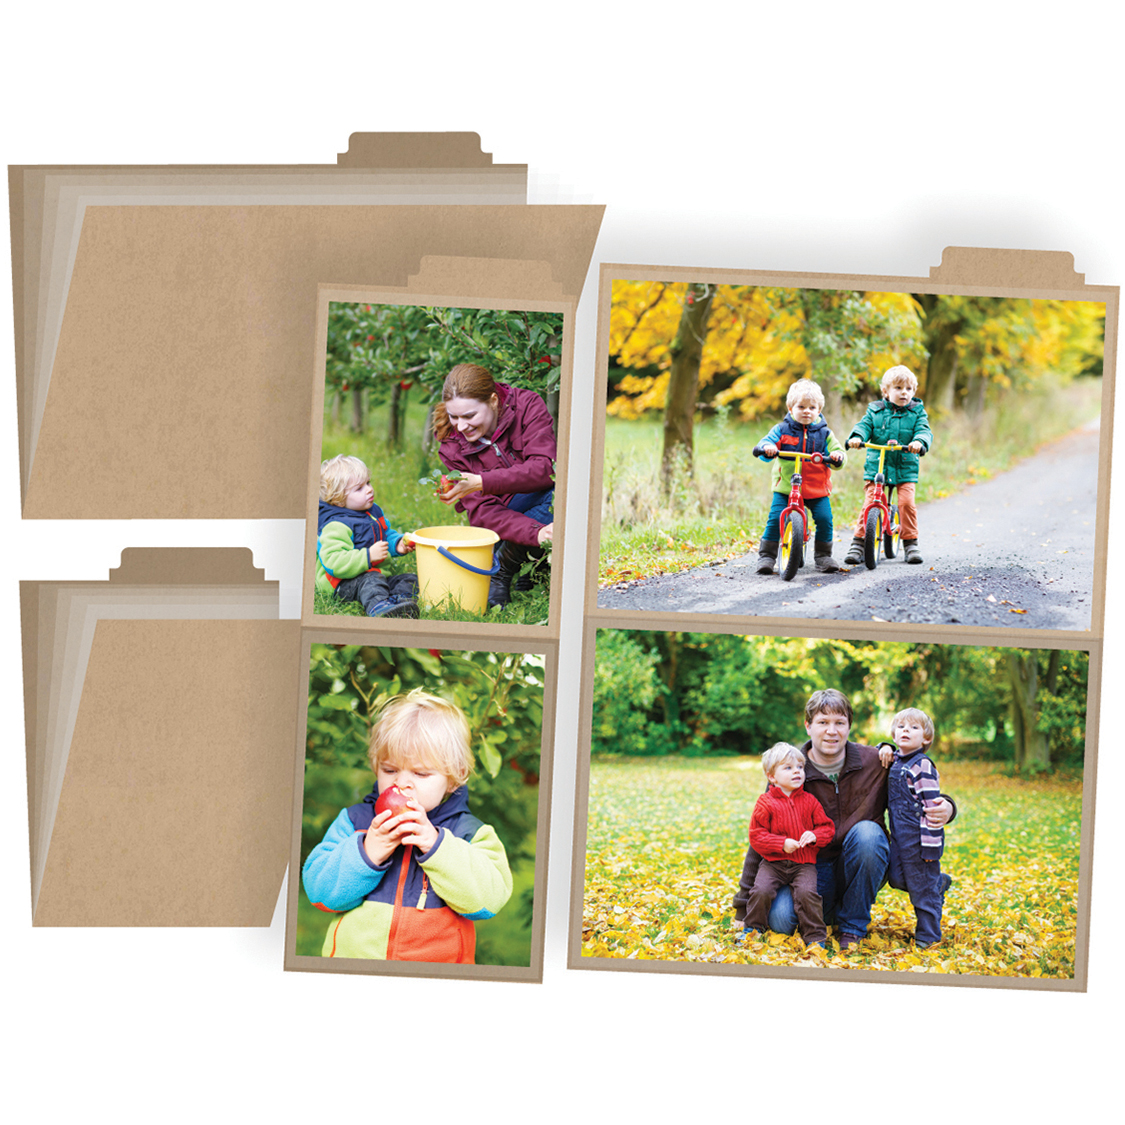 I Am Photo Booklets W/4 Pocket Pages 2/Pkg-4X6 & 3X4